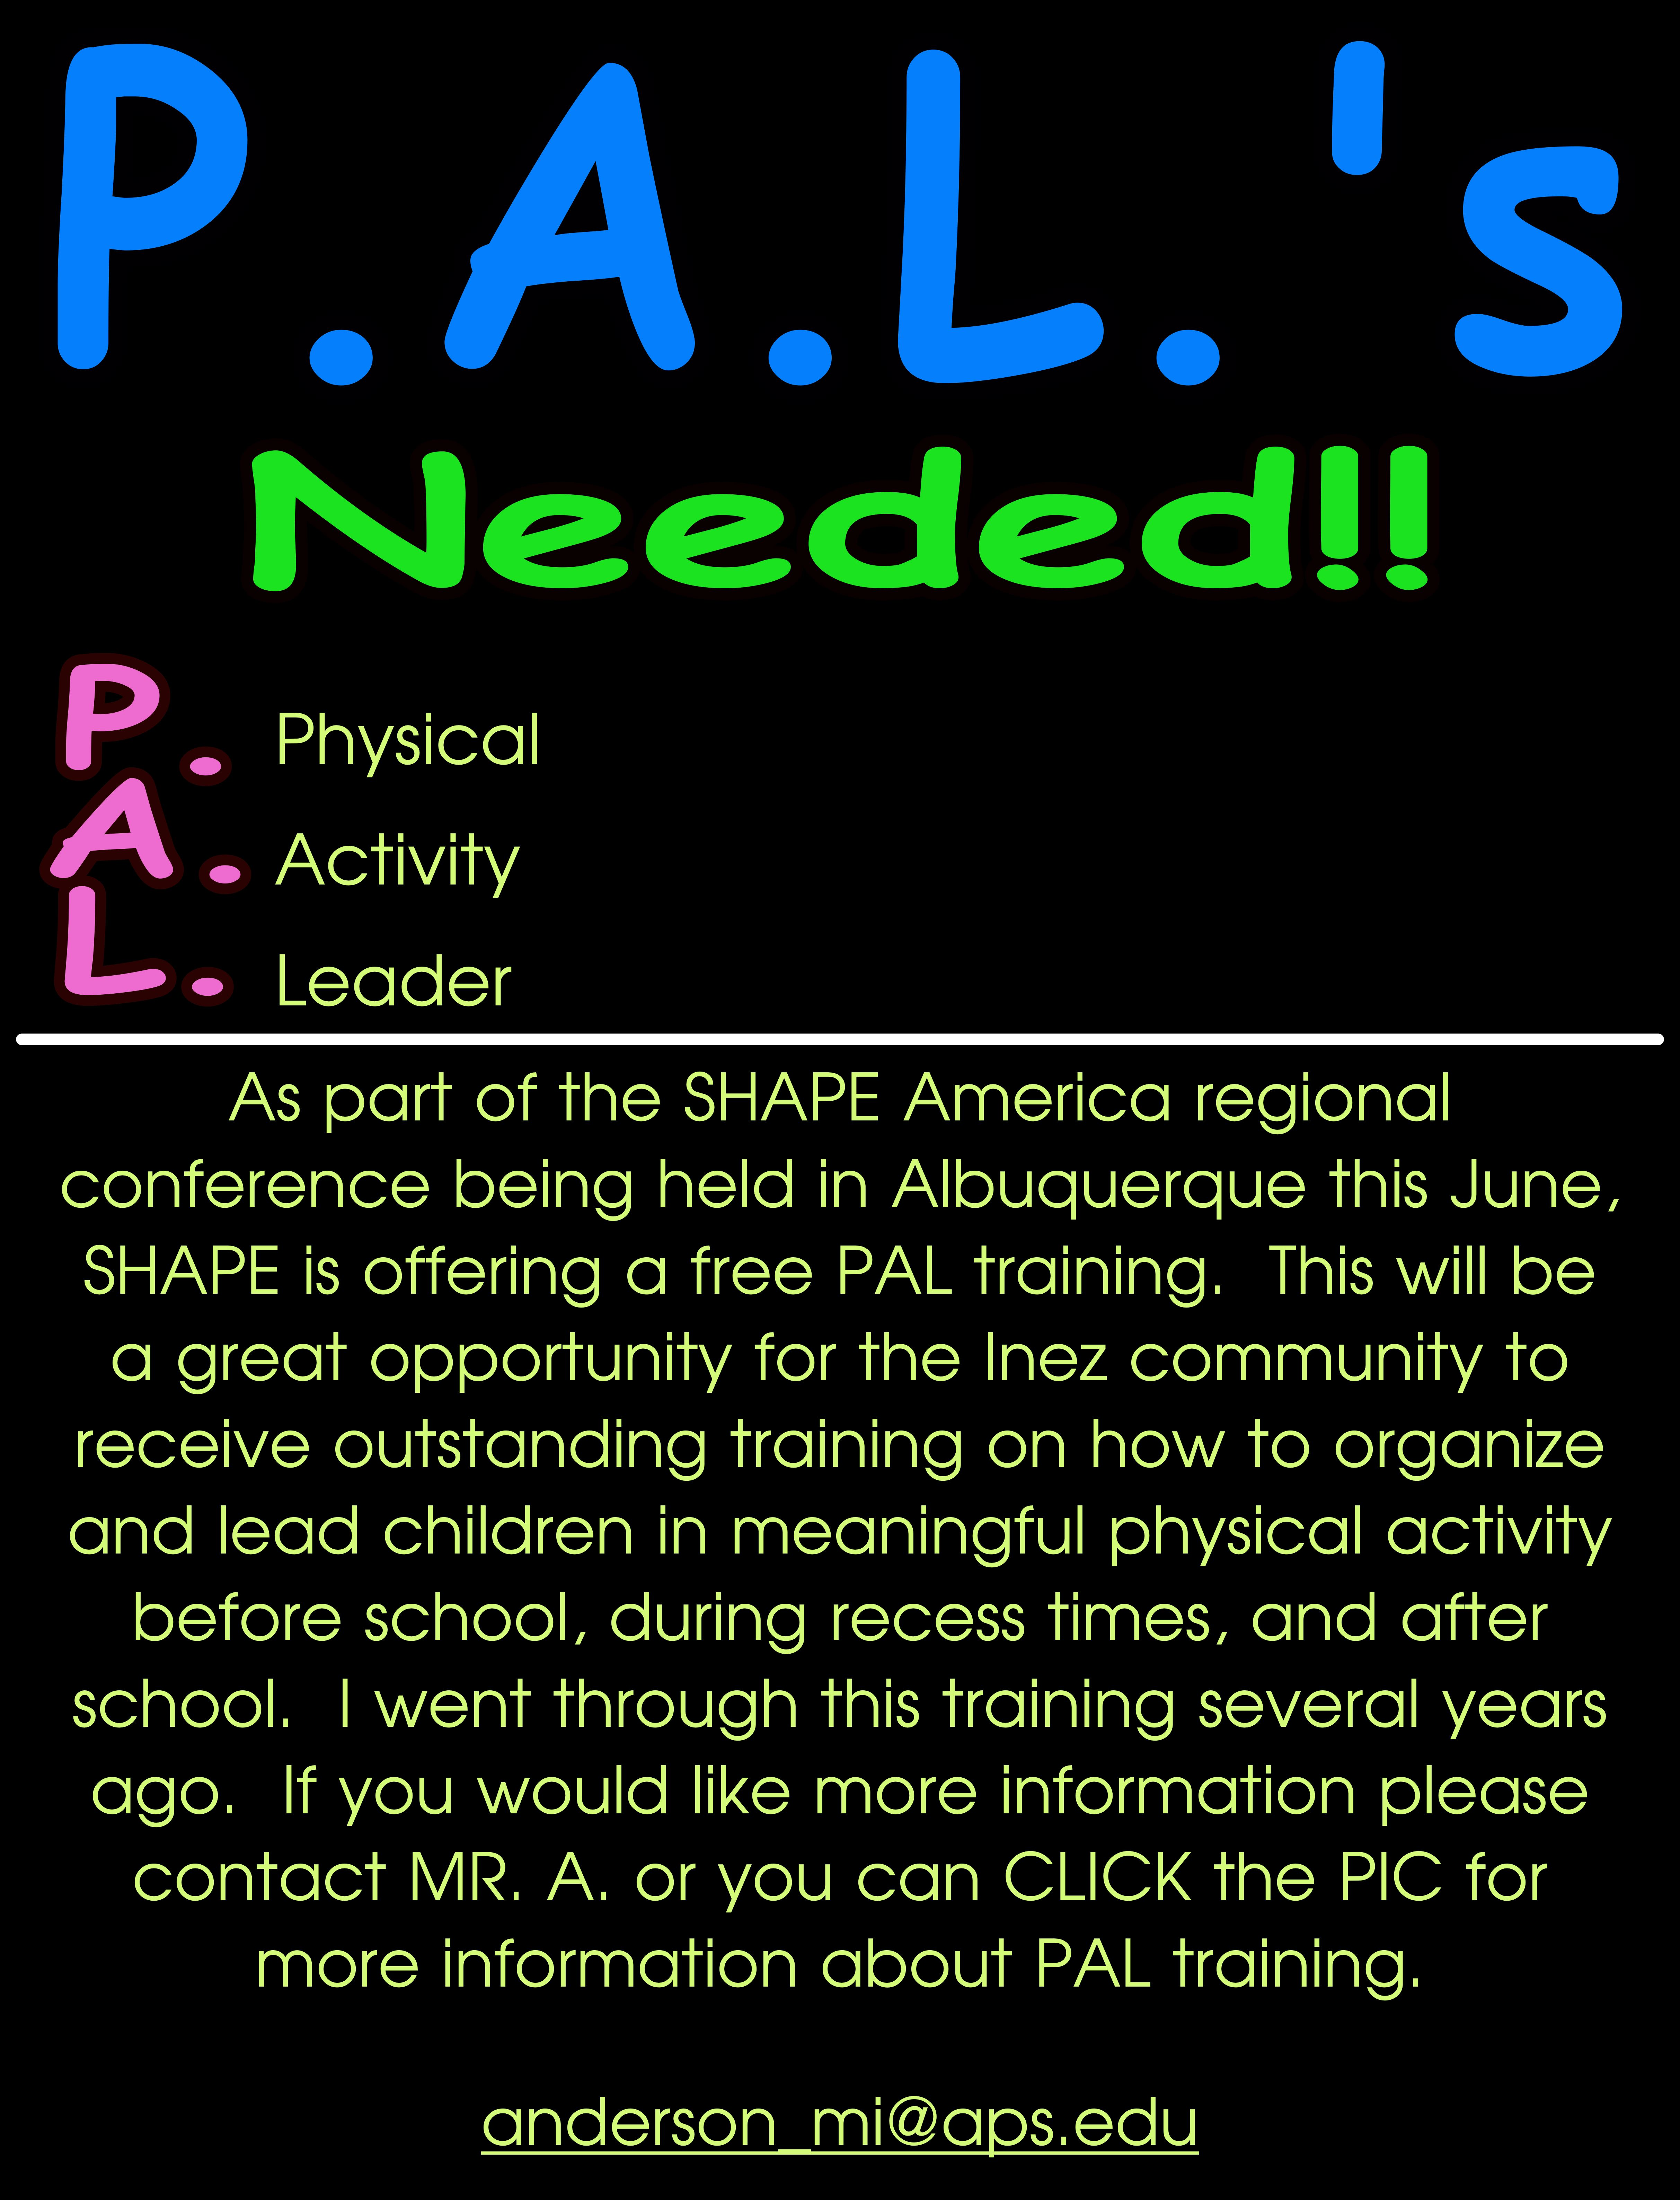 P.A.L.'s Needed!!